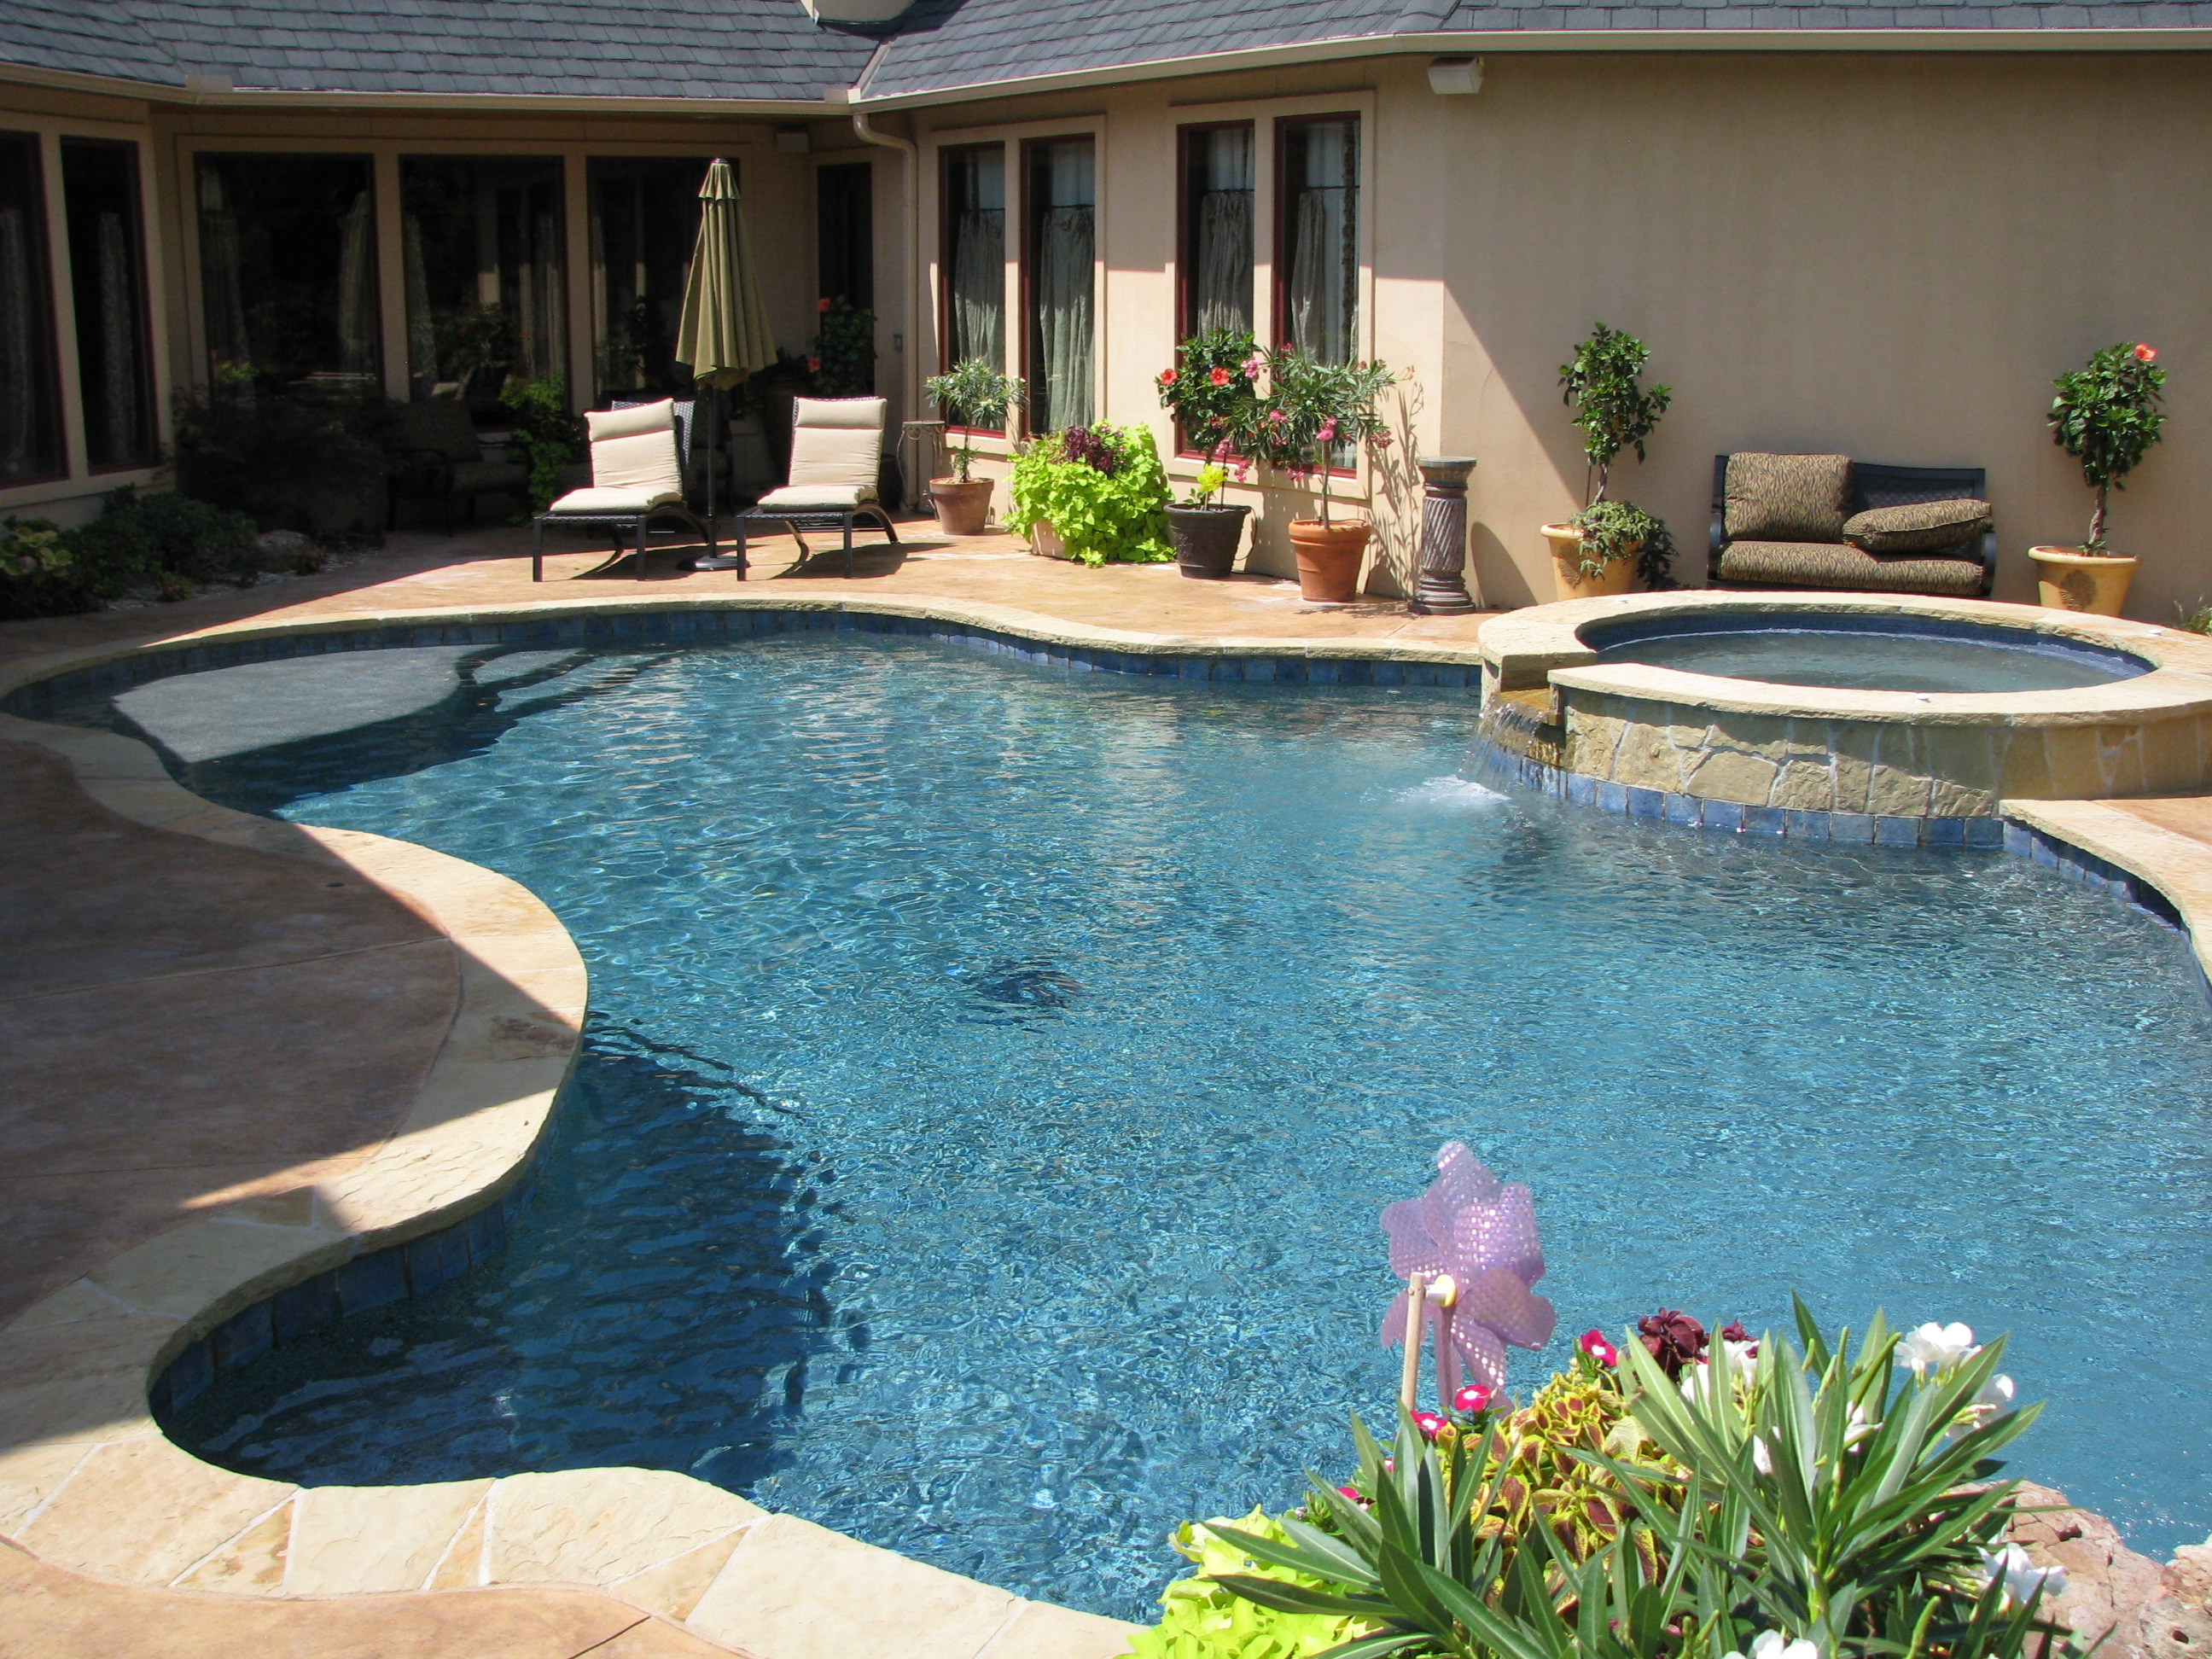 free form pool designs in okc norman ok blue haven pools - Free Form Swimming Pool Designs